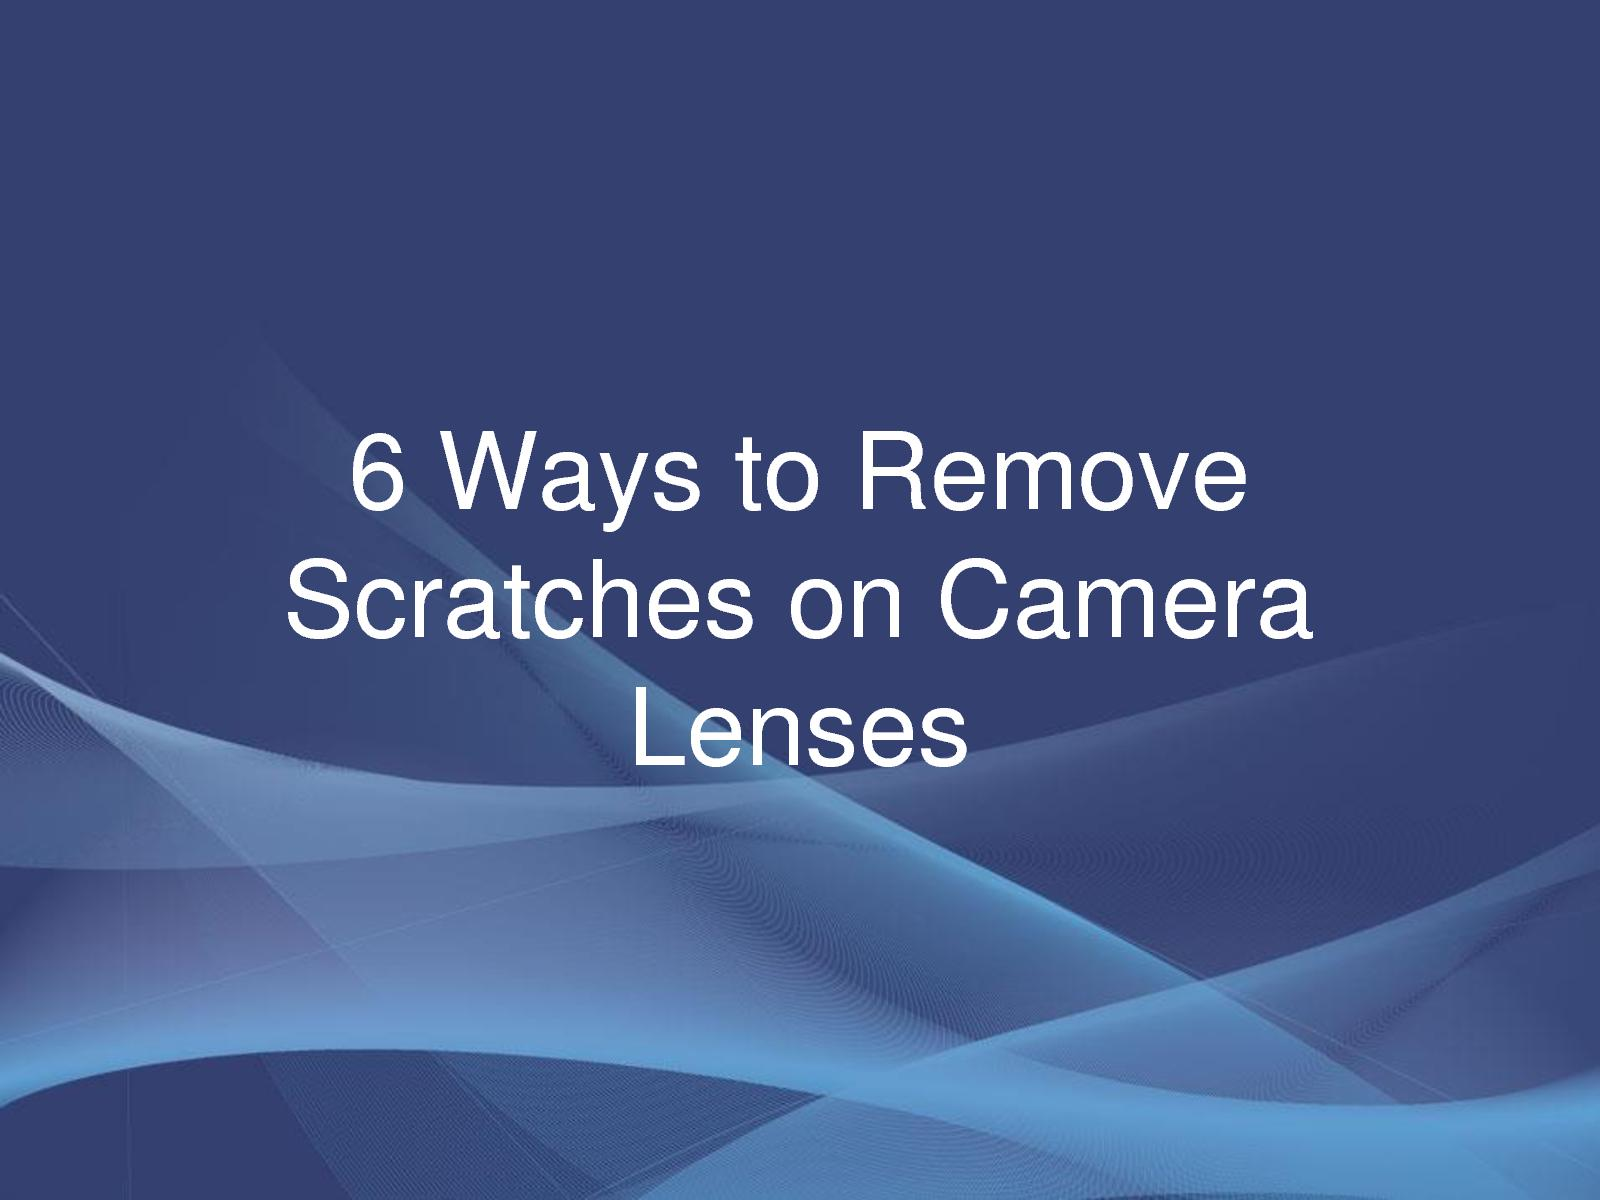 b8b5ad8b6c Calaméo - How to Remove Scratches from Camera Lenses